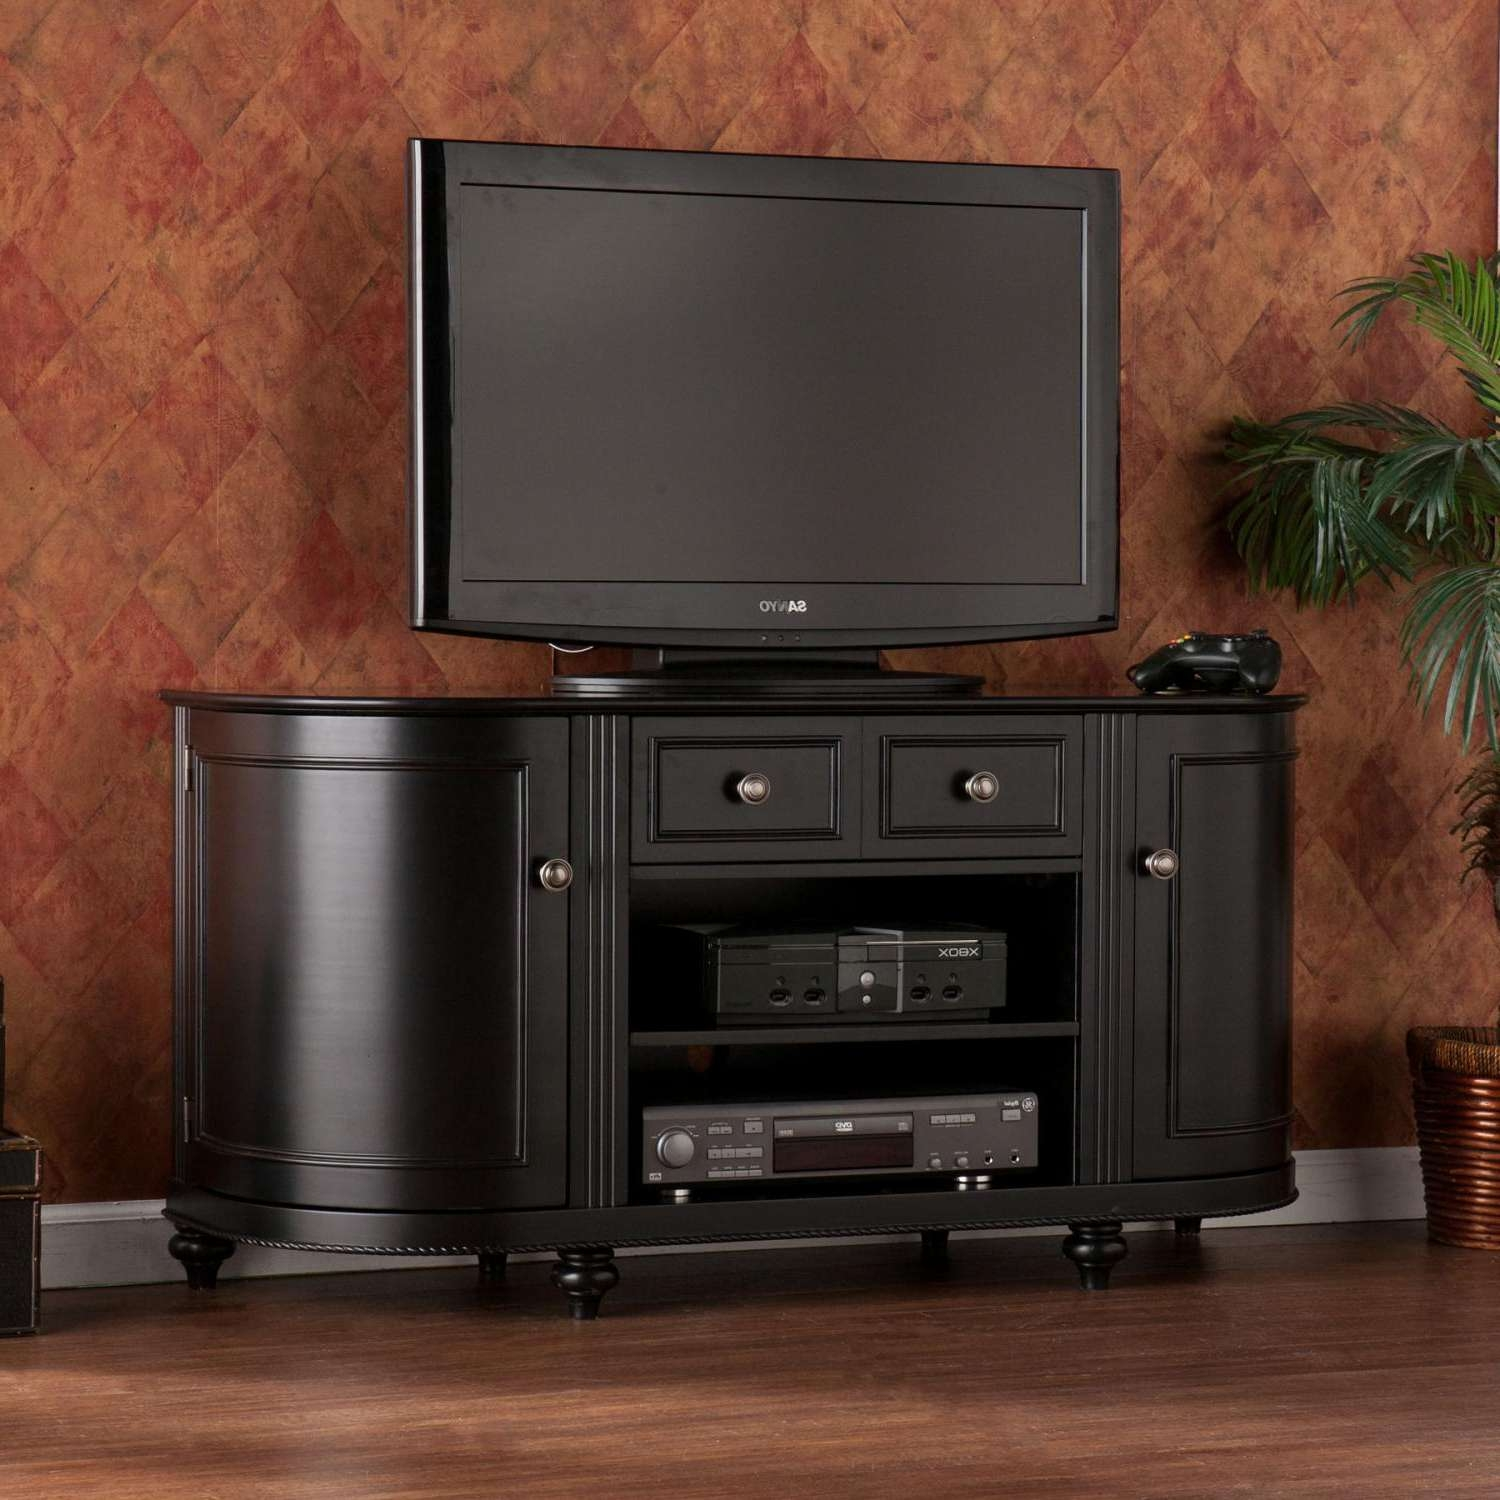 Led/lcd Tv Stand For Up To 58 Inch Plasma, Dlp And Led/lcd Tvs For Tv Stands For Large Tvs (View 5 of 15)